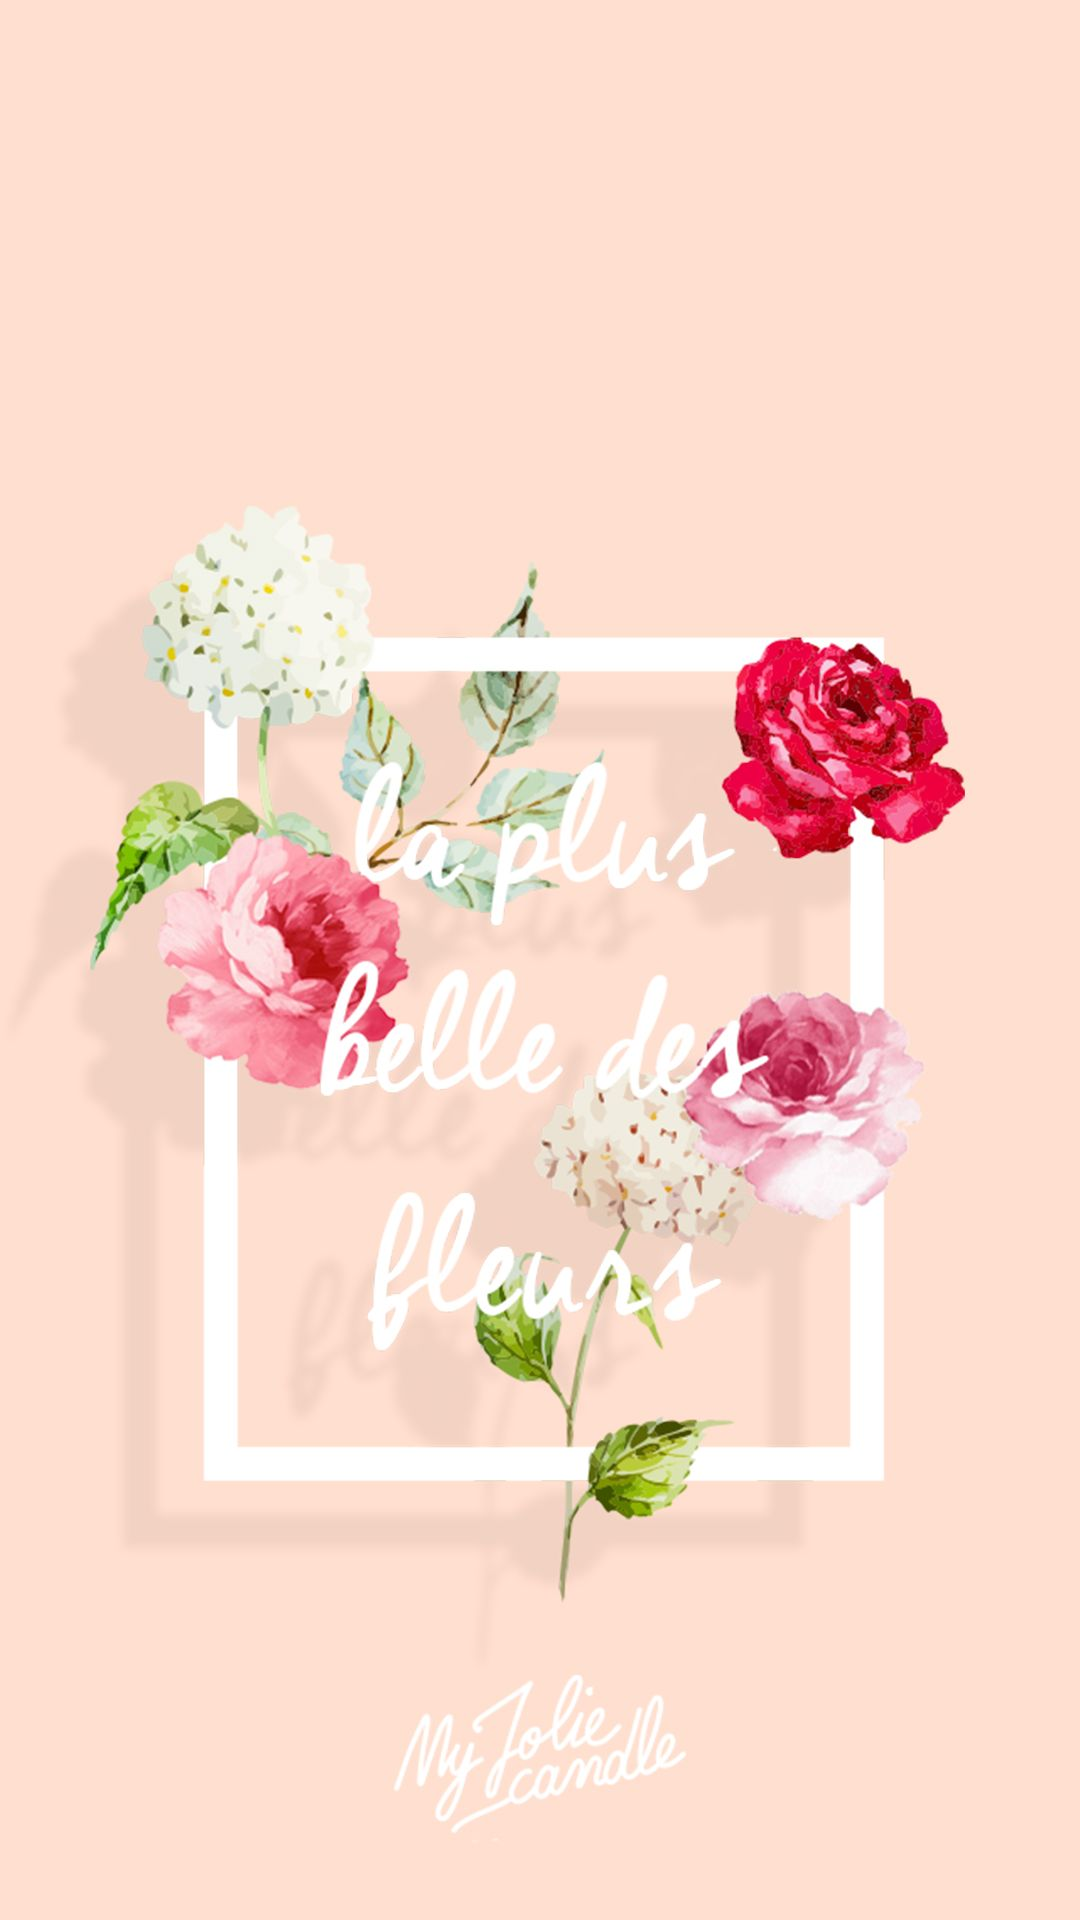 Belle Flower Peach iPhone Wallpaper Lock Screen PanPins